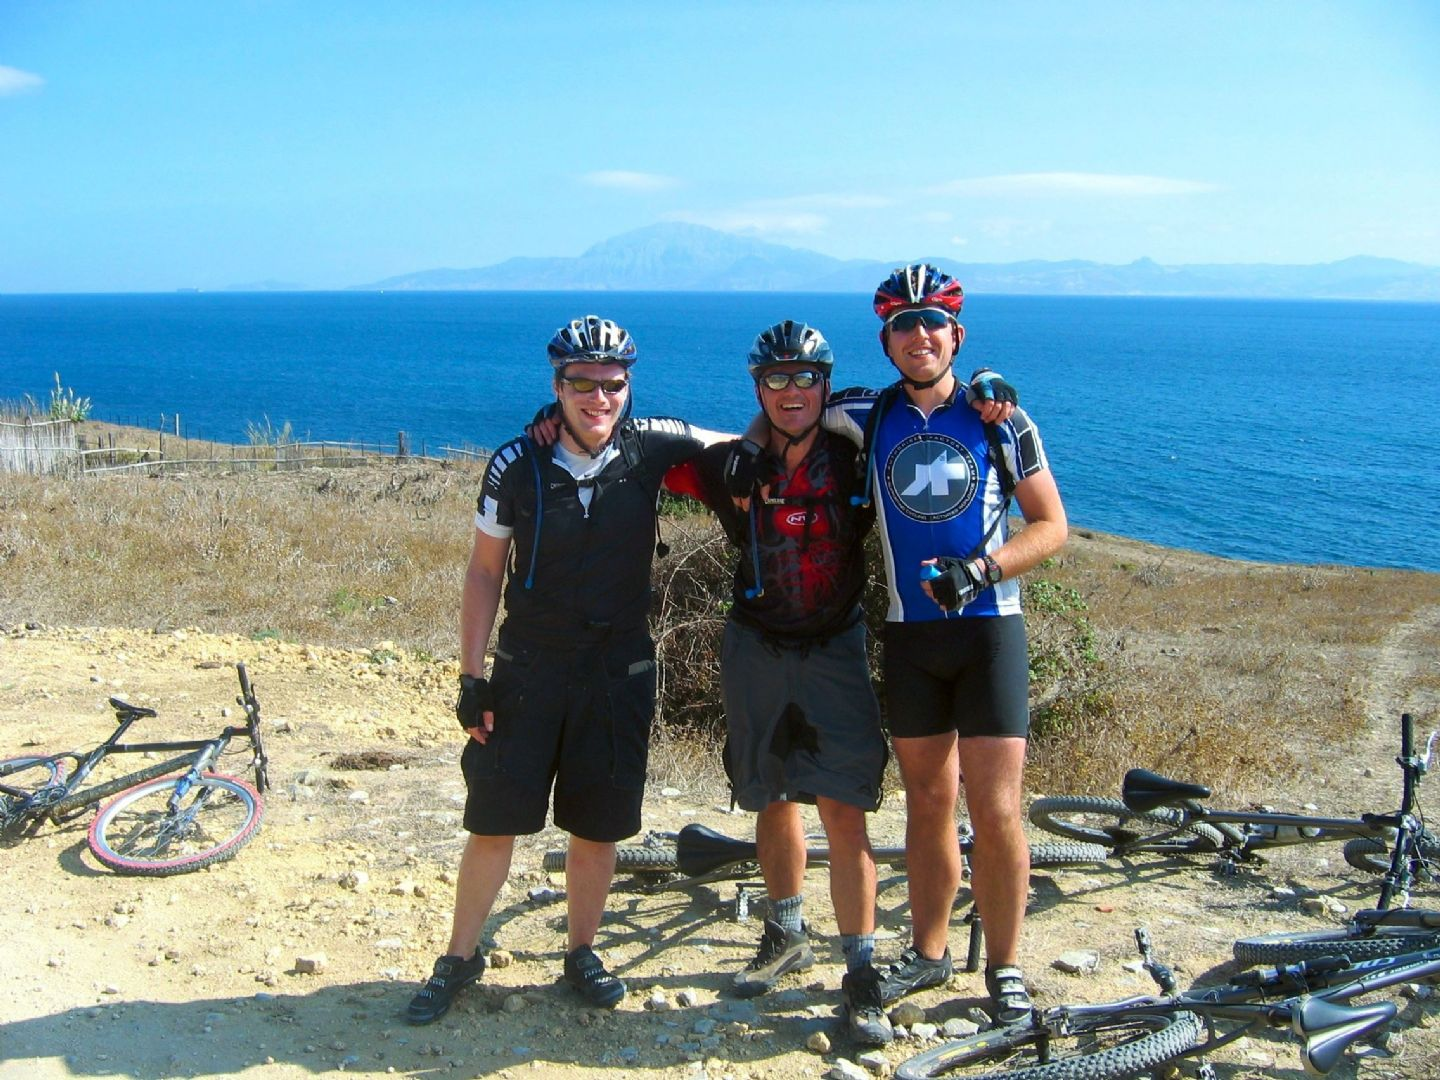 Spain - Trans Andaluz - Guided Mountain Bike Holiday - Mountain Biking